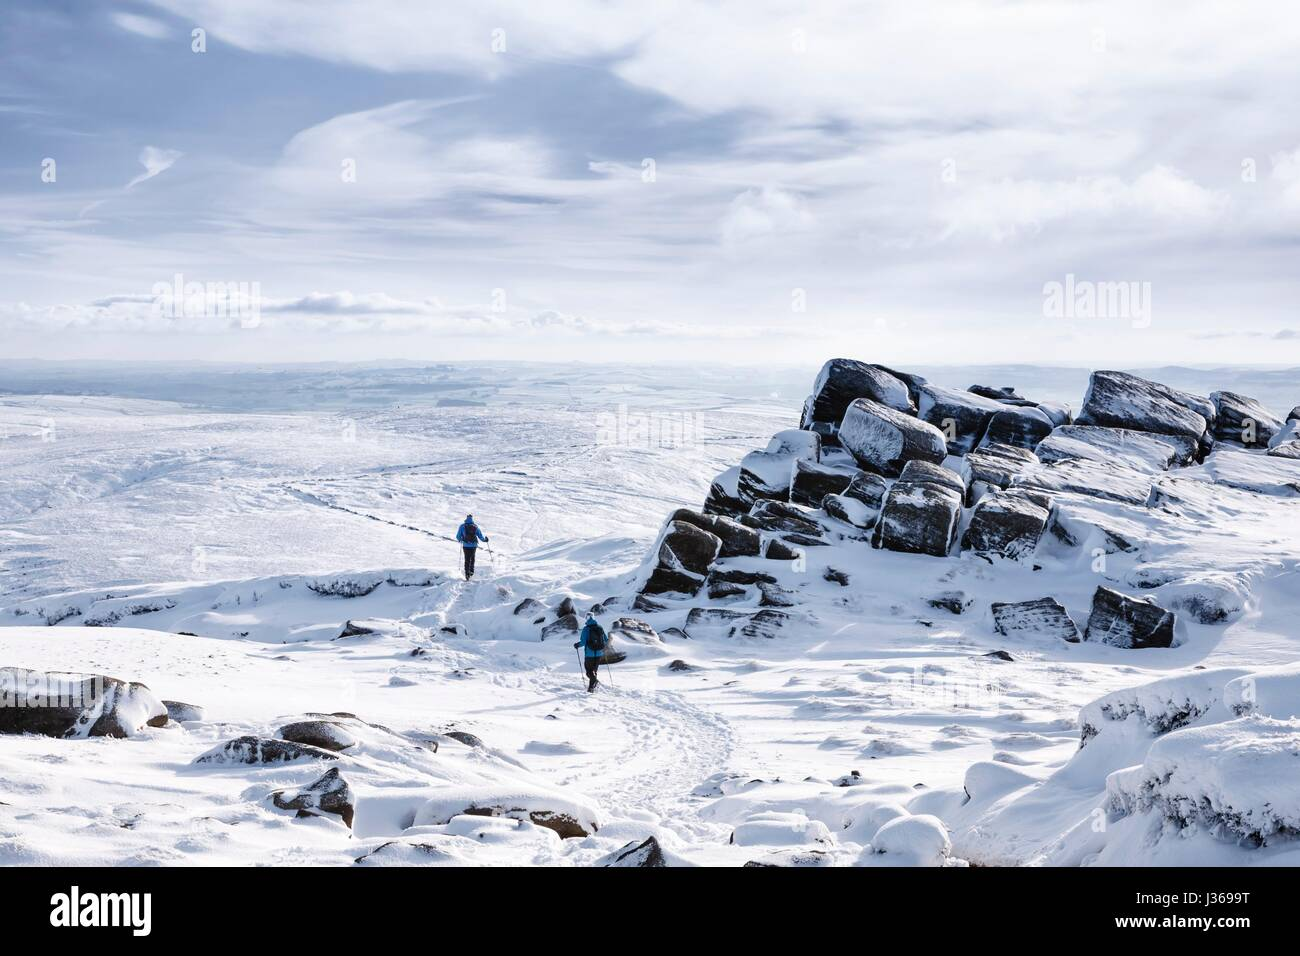 Hikers on Kinder Scout in winter snow, Peak District, UK - Stock Image